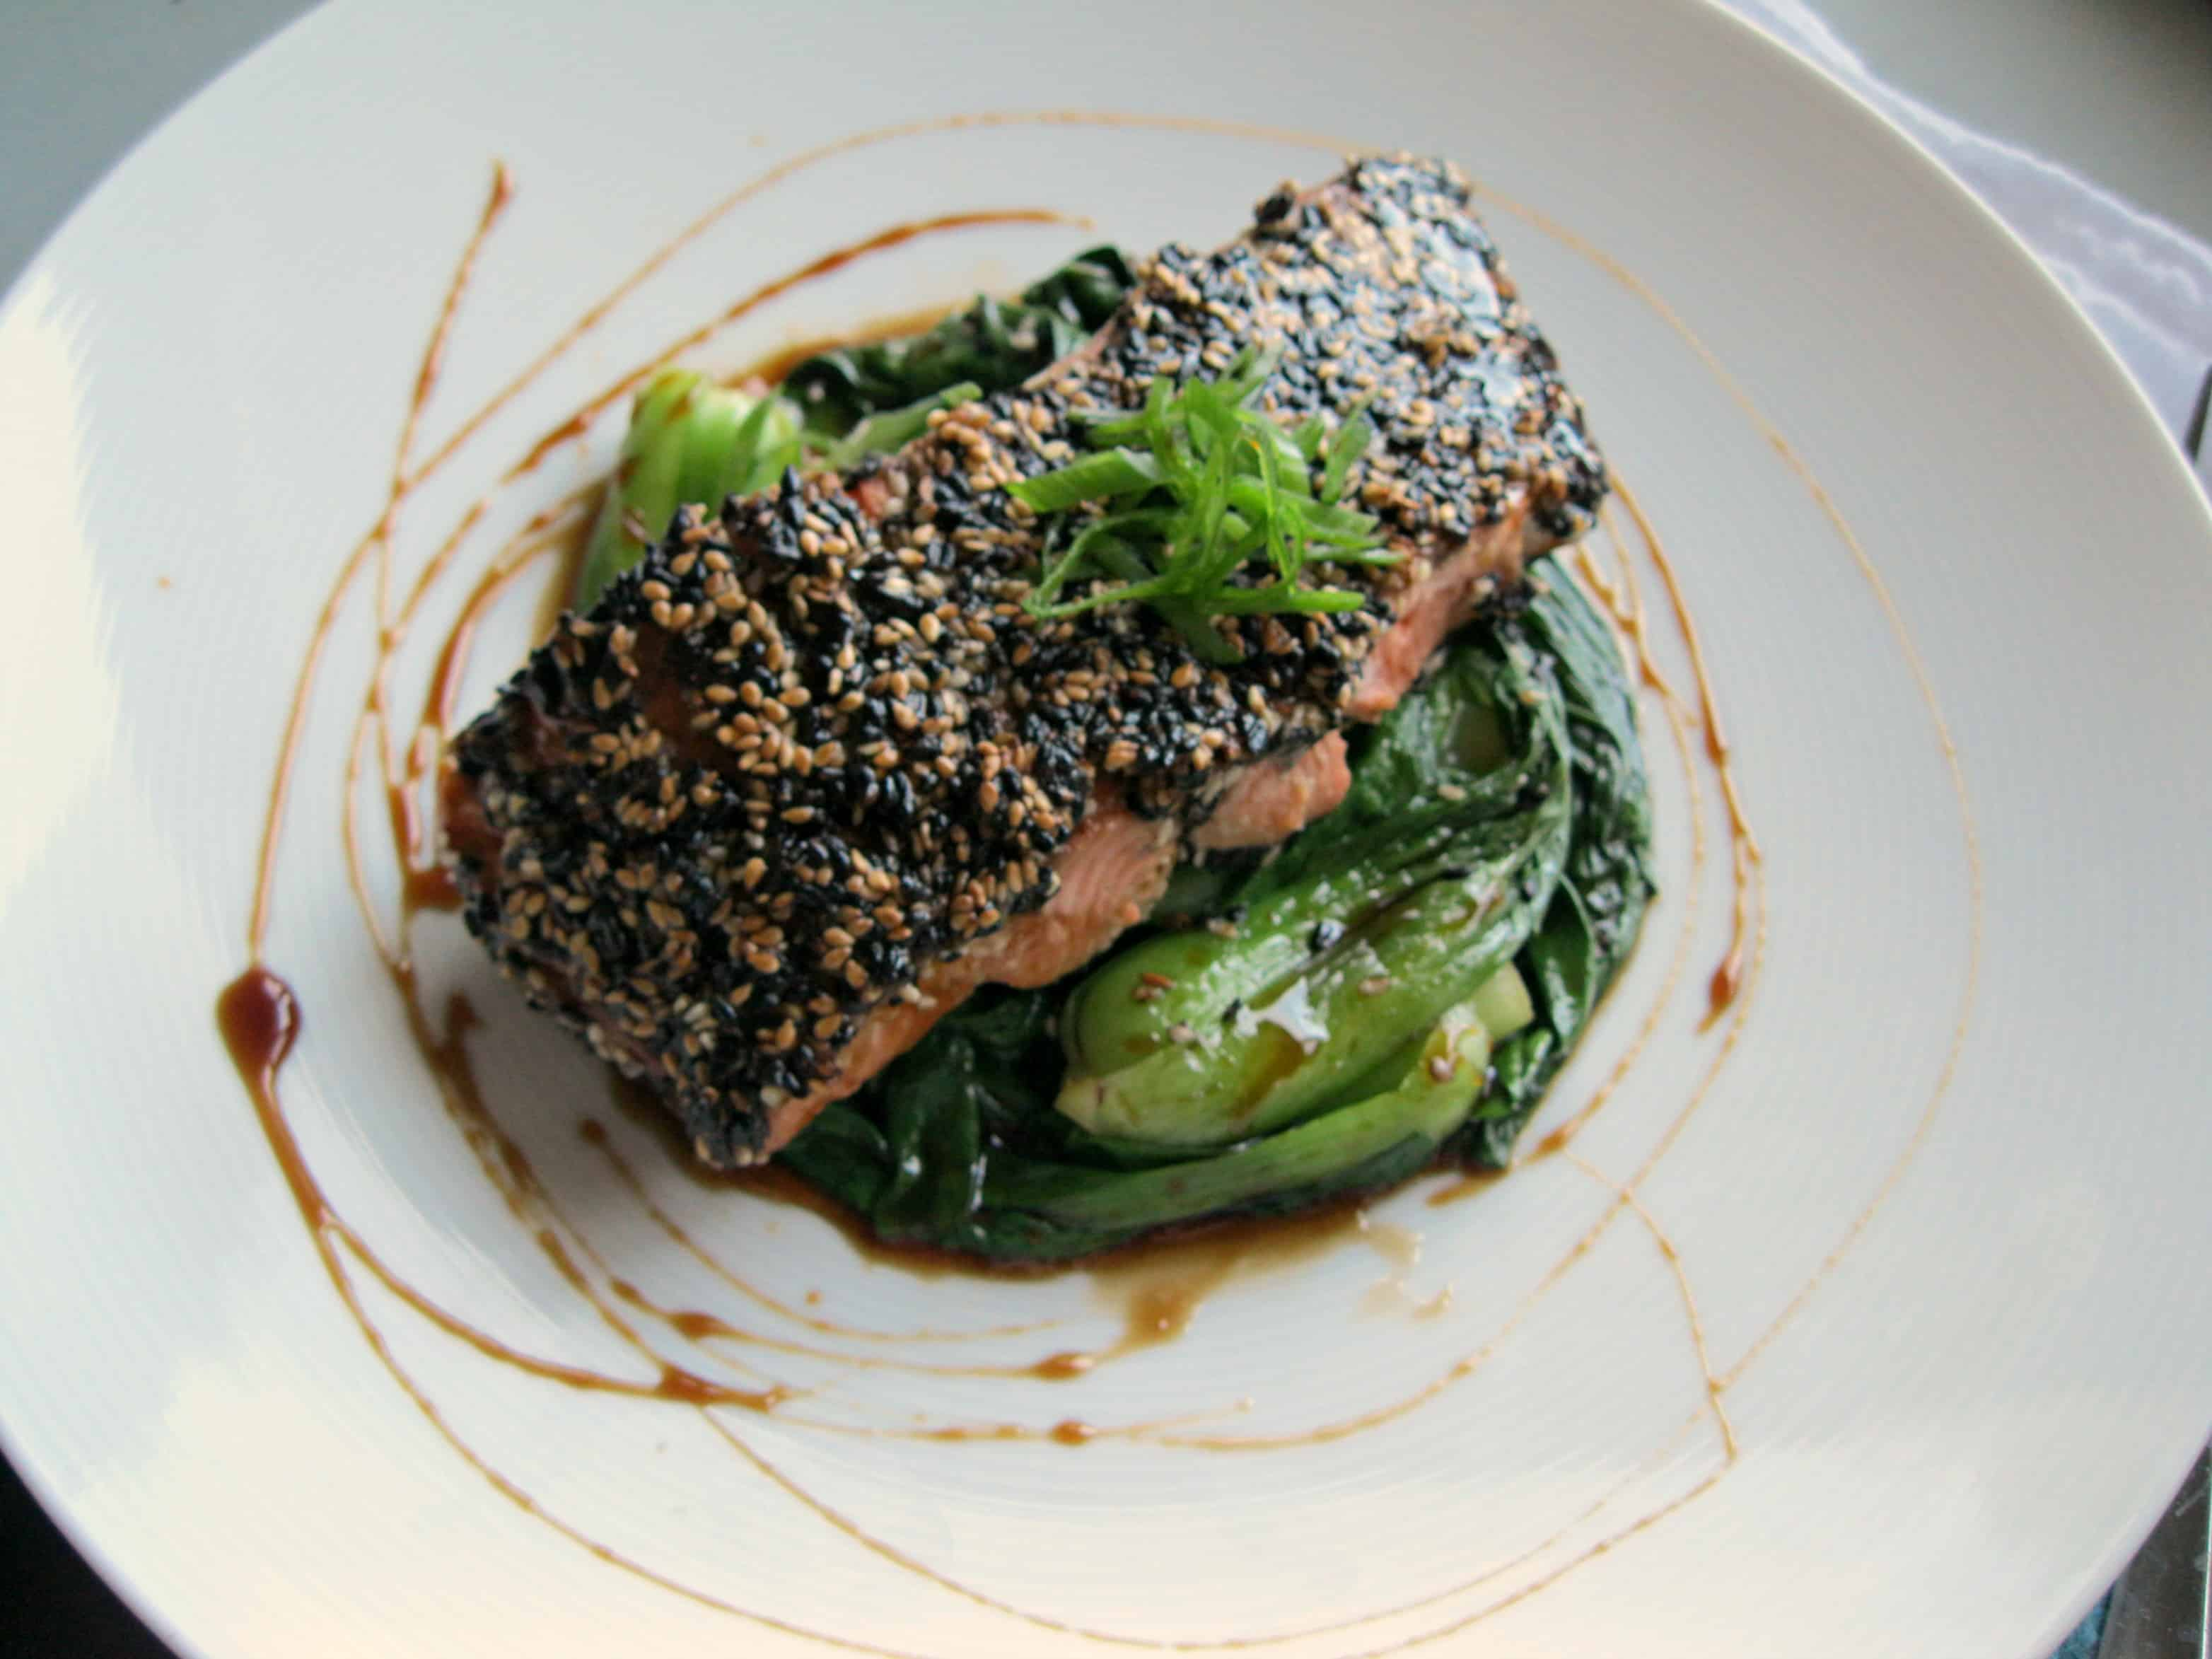 Top view of a sesame crusted salmon fillet over greens in a bowl.